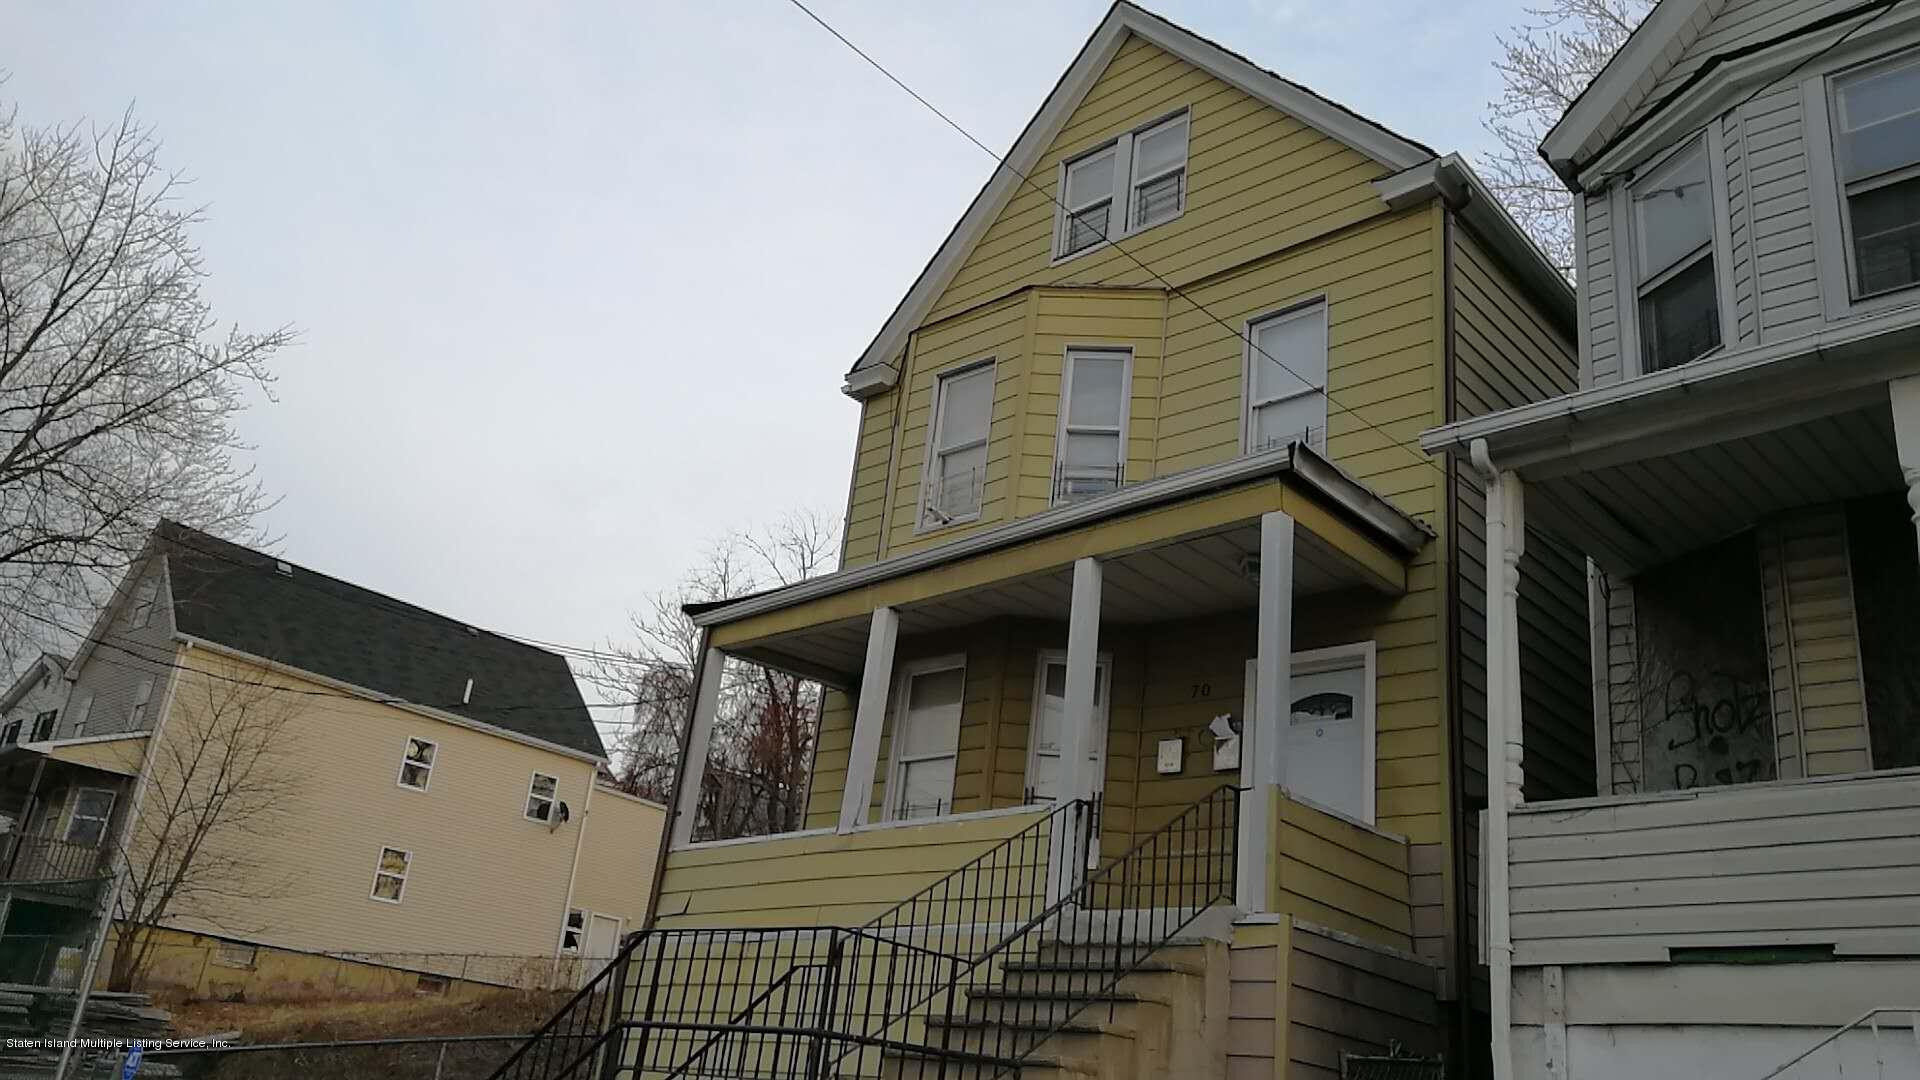 Two Family - Detached 70 Van Buren Street  Staten Island, NY 10301, MLS-1124773-2